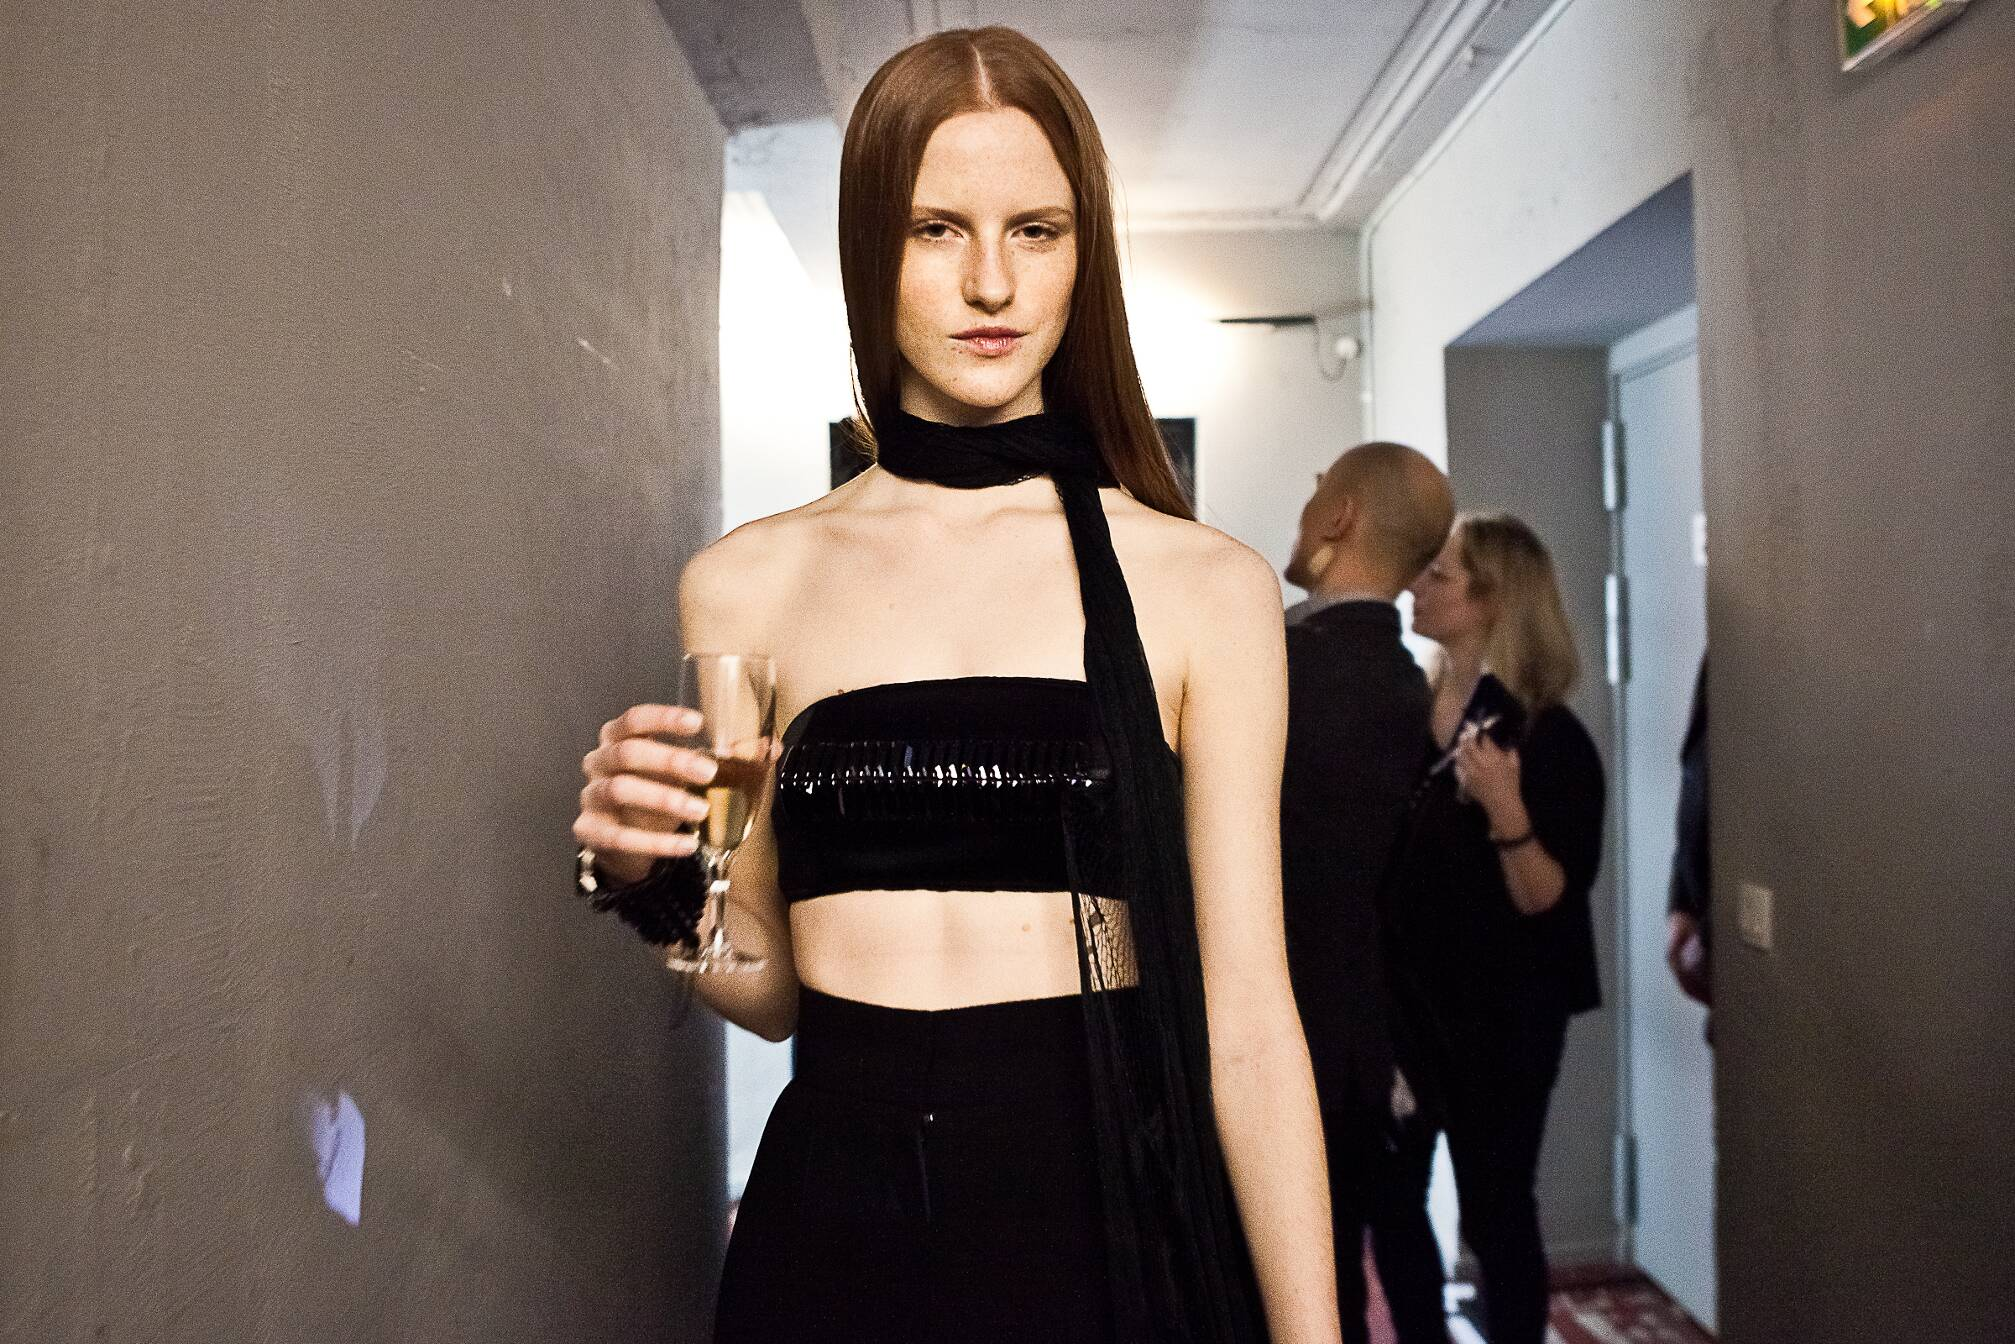 Backstage Jean Paul Gaultier Haute Couture Fashion Show